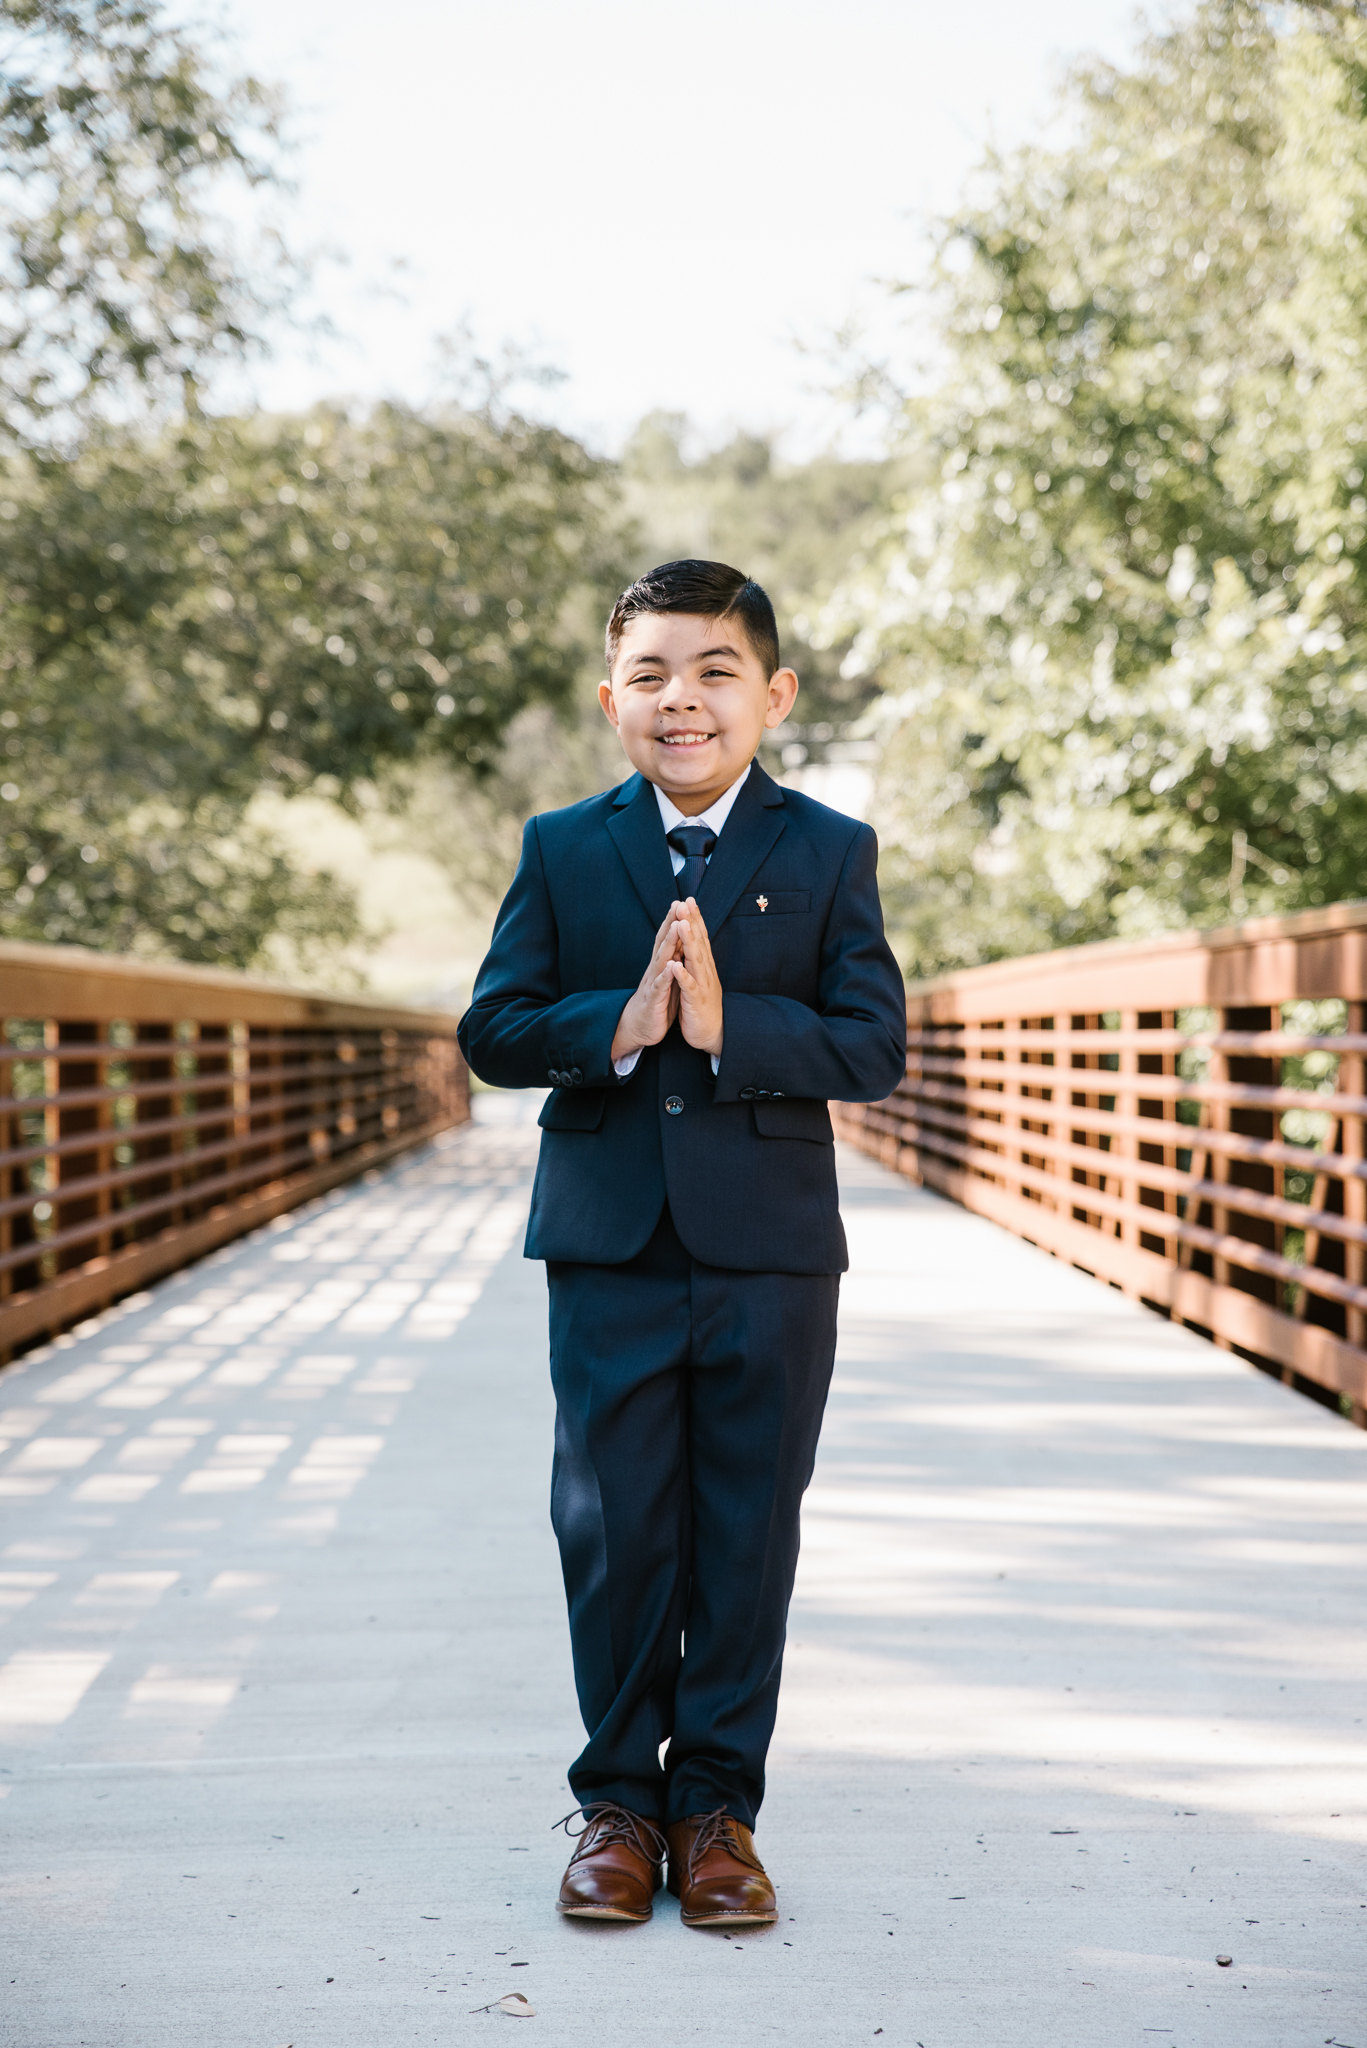 First Communion Catholic Photographer_First Communion Austin Texas_Round Rock Photographer_Emily Ingalls Photography_Austin Photographer_Pflugerville Photographer_Georgetown Photographer-12.jpg